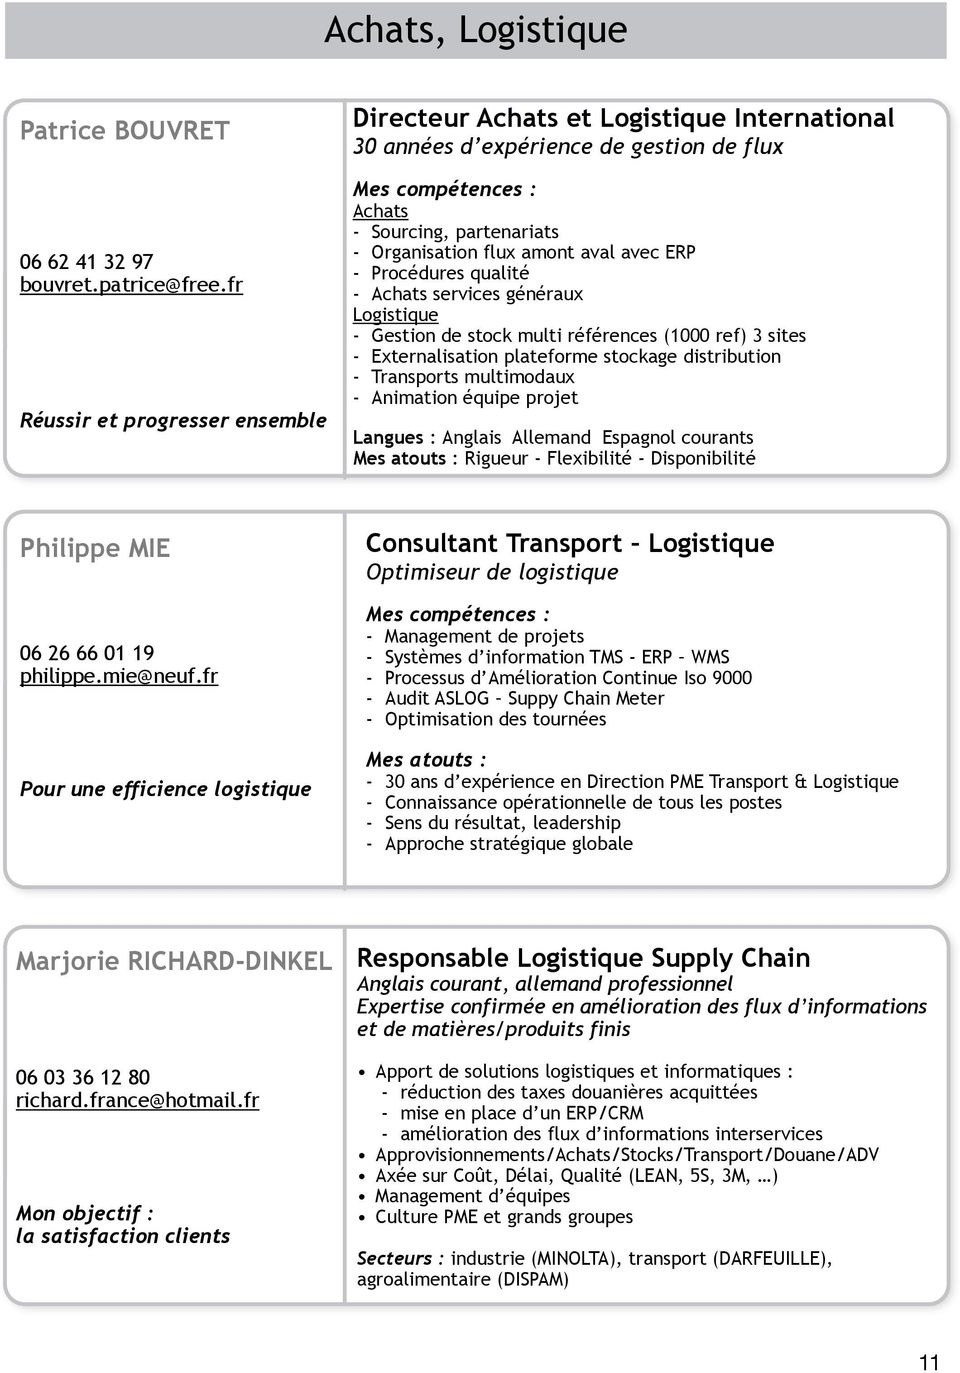 Procédures qualité - Achats services généraux Logistique - Gestion de stock multi références (1000 ref) 3 sites - Externalisation plateforme stockage distribution - Transports multimodaux - Animation